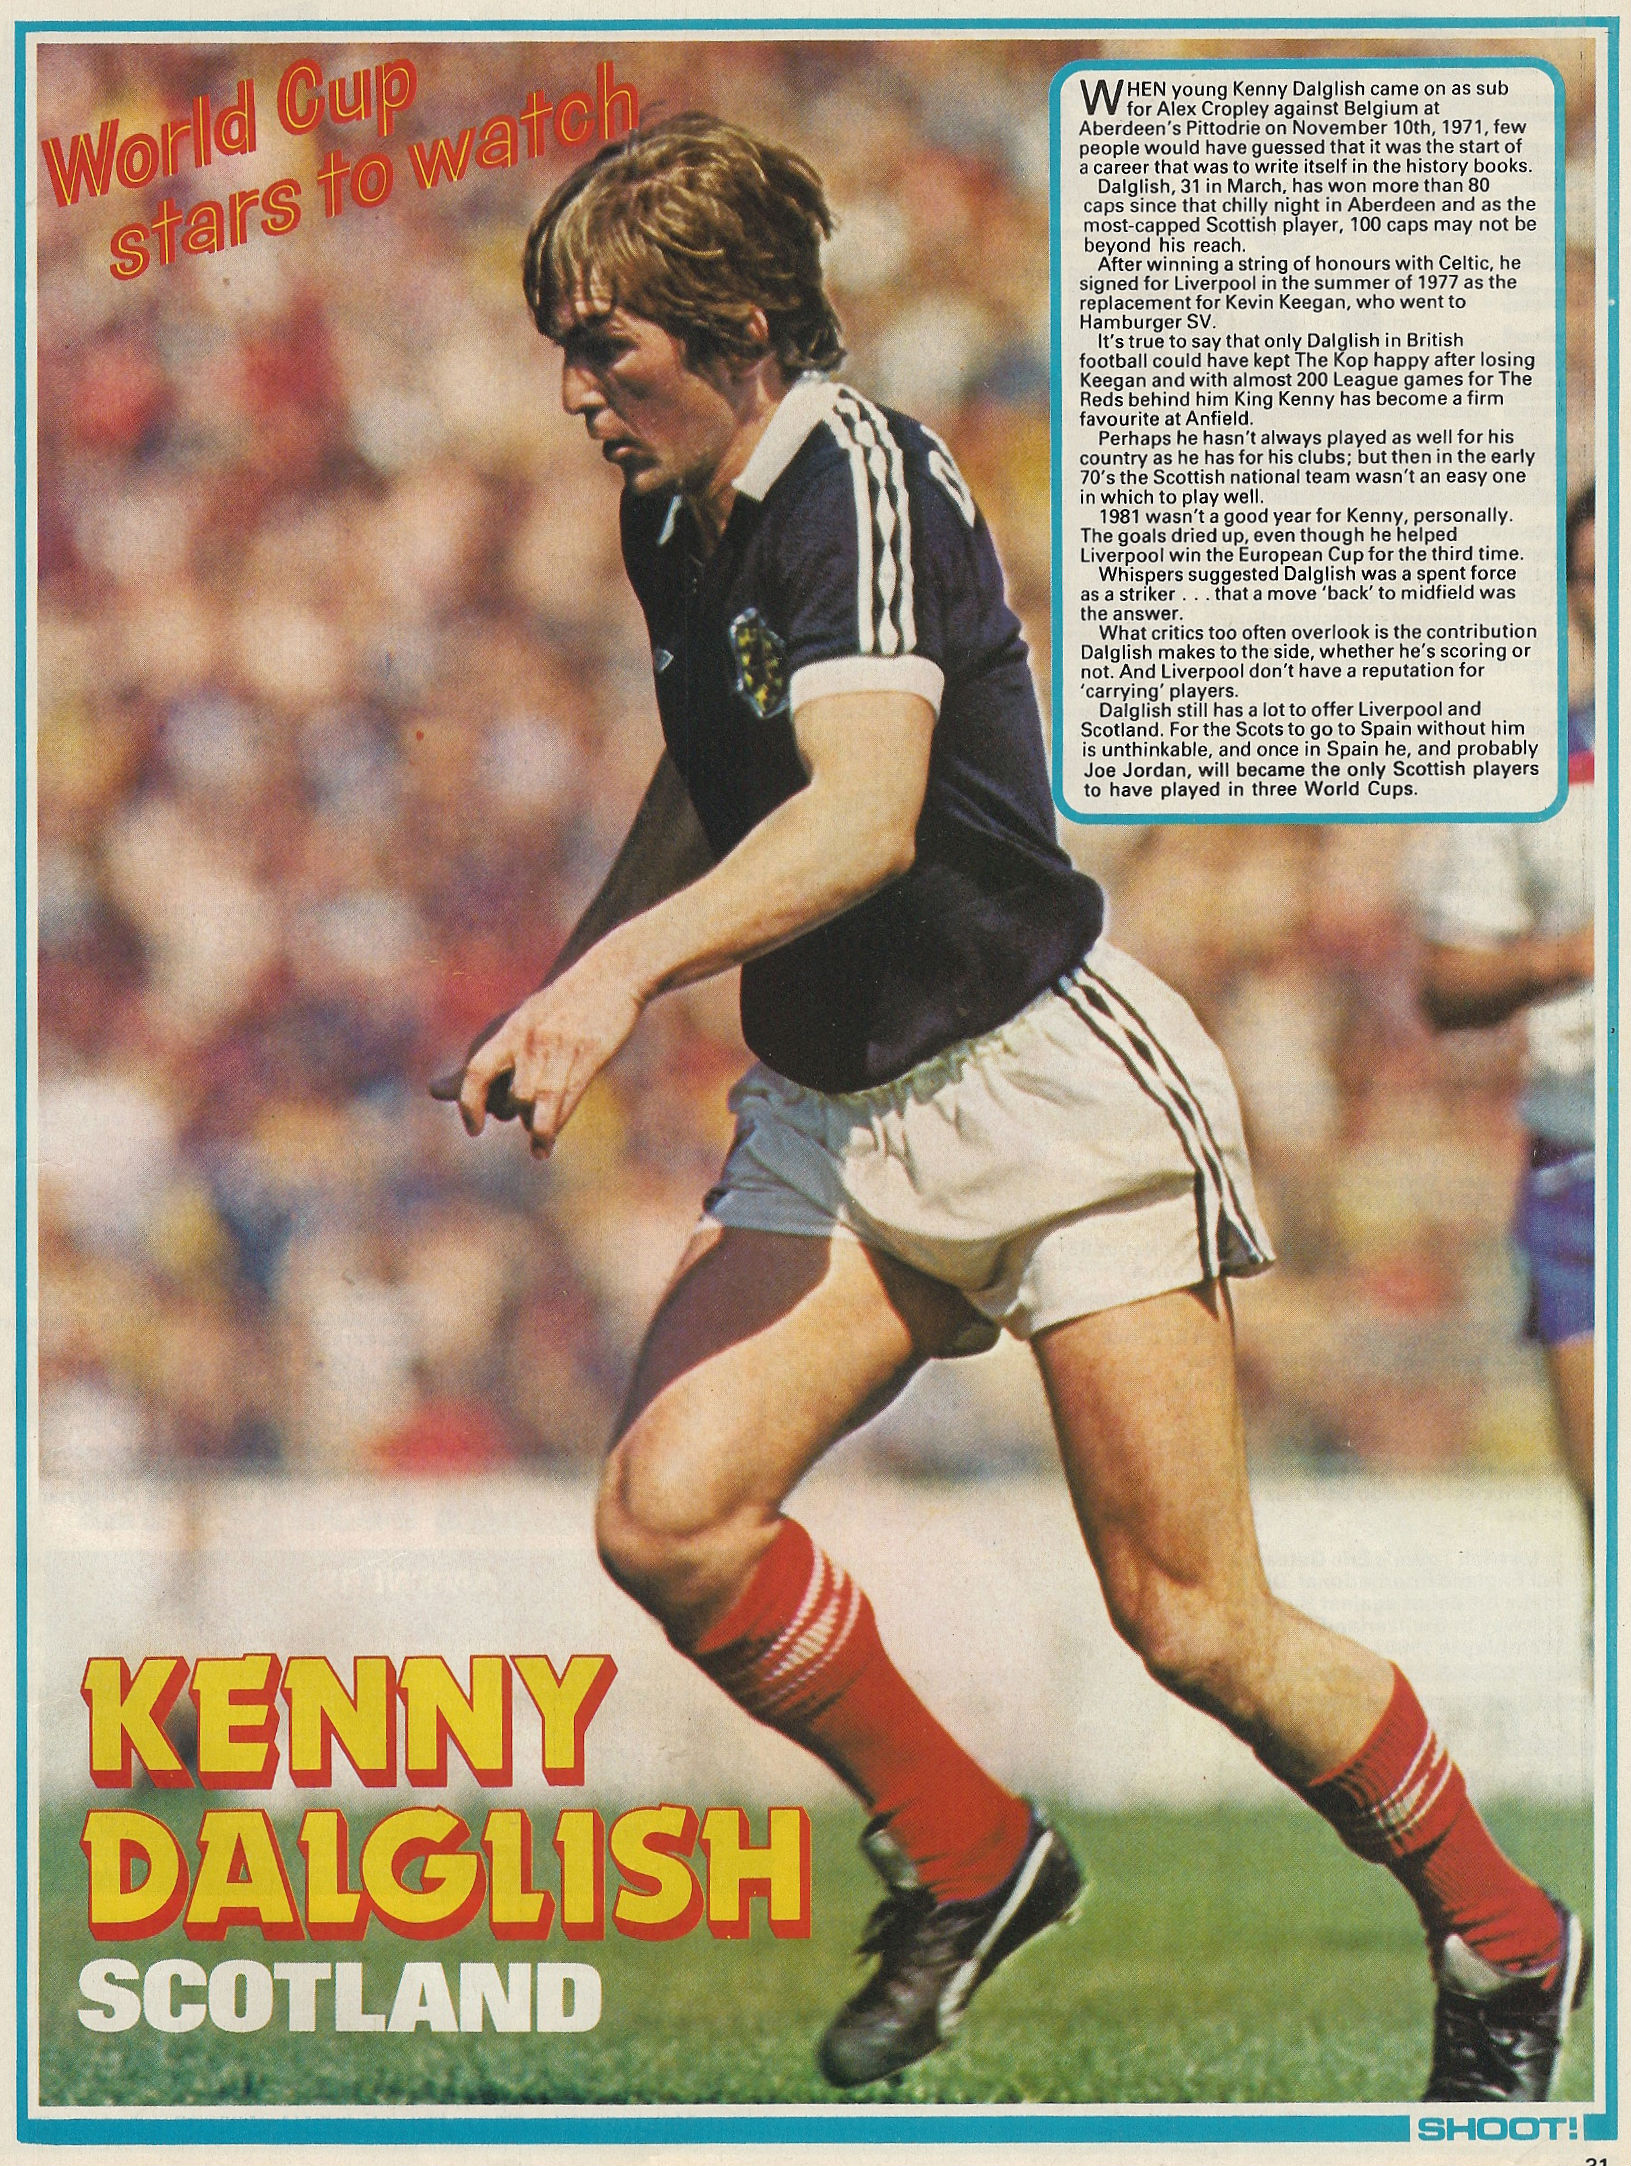 a44a22ce4 Liverpool career stats for Kenny Dalglish - LFChistory - Stats ...